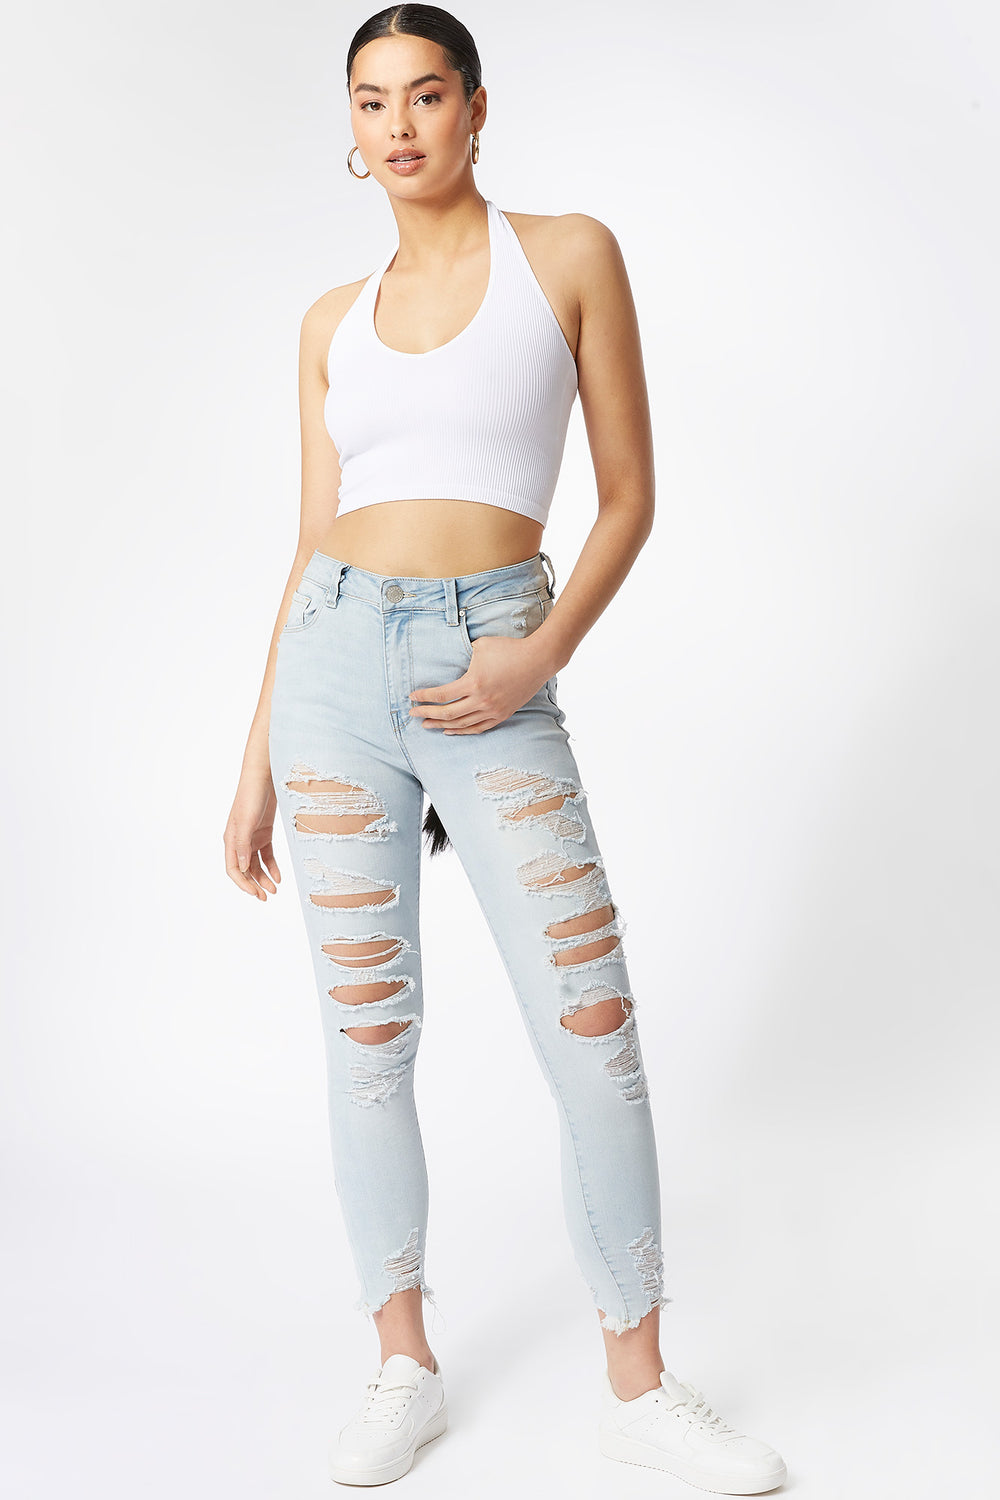 Refuge Miami High-Rise Distressed Blue Acid Wash Skinny Jean Sky Blue